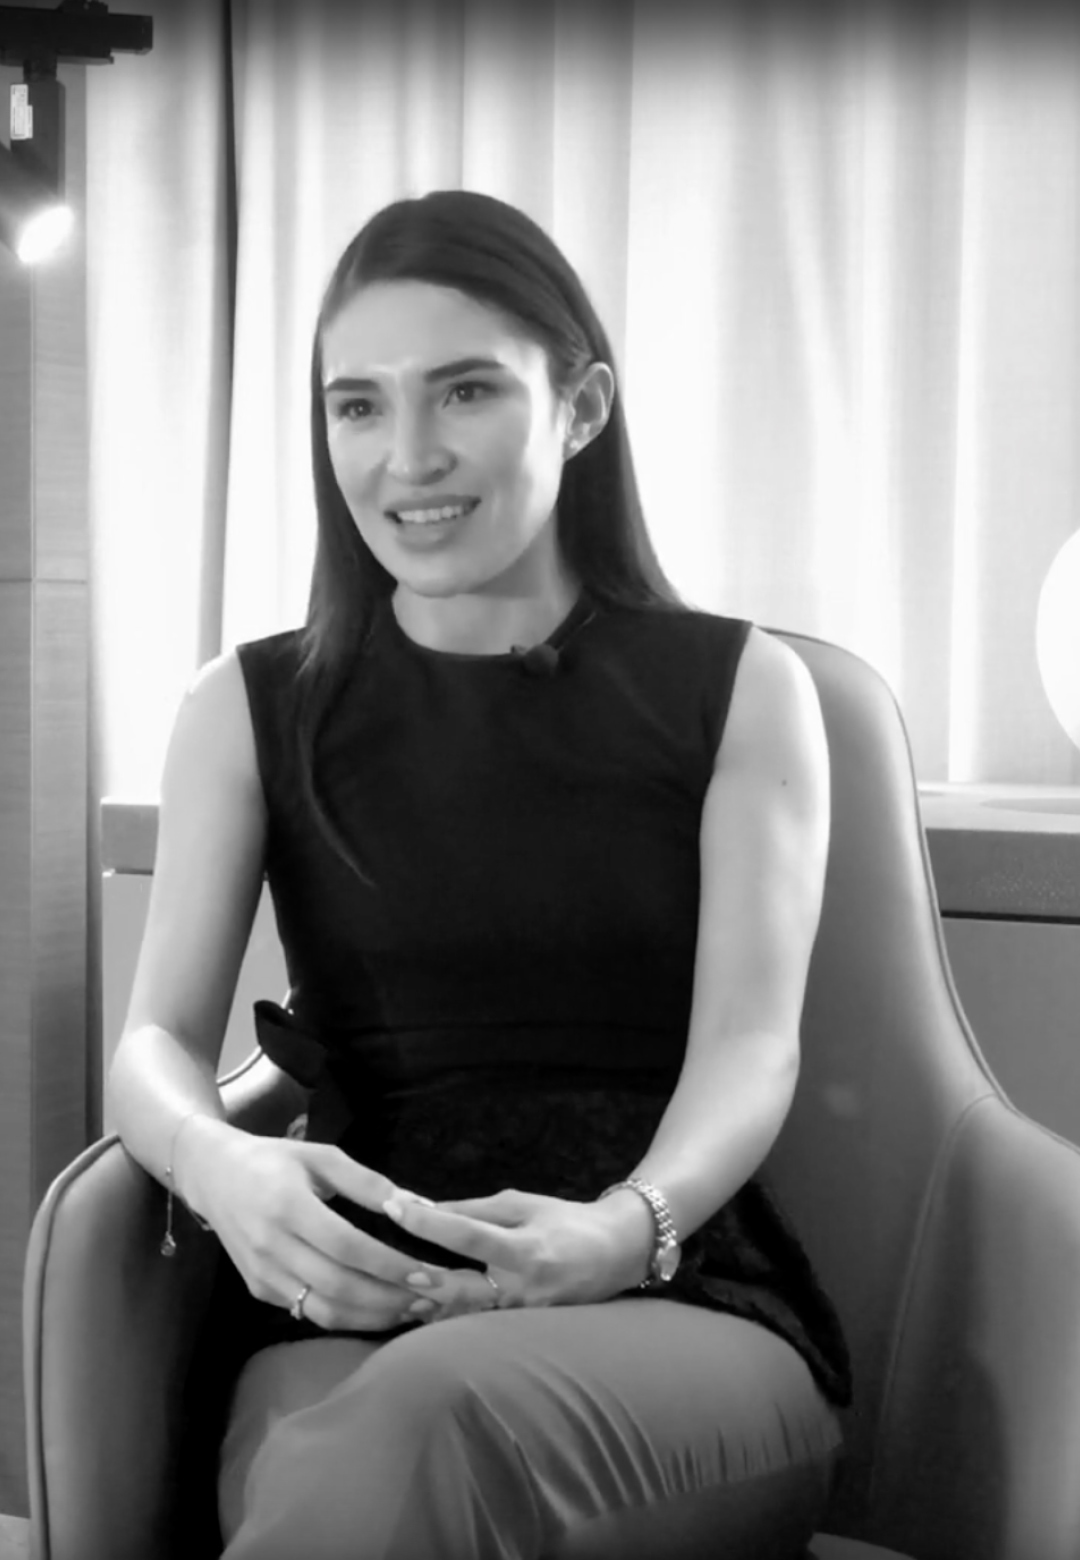 An interview with Patricia Lopez-Yanez from Emaar Development, for Women in Lighting | Patricia Lopez-Yanez | Emaar Development| Women in Lighting| Light Collective| STIR